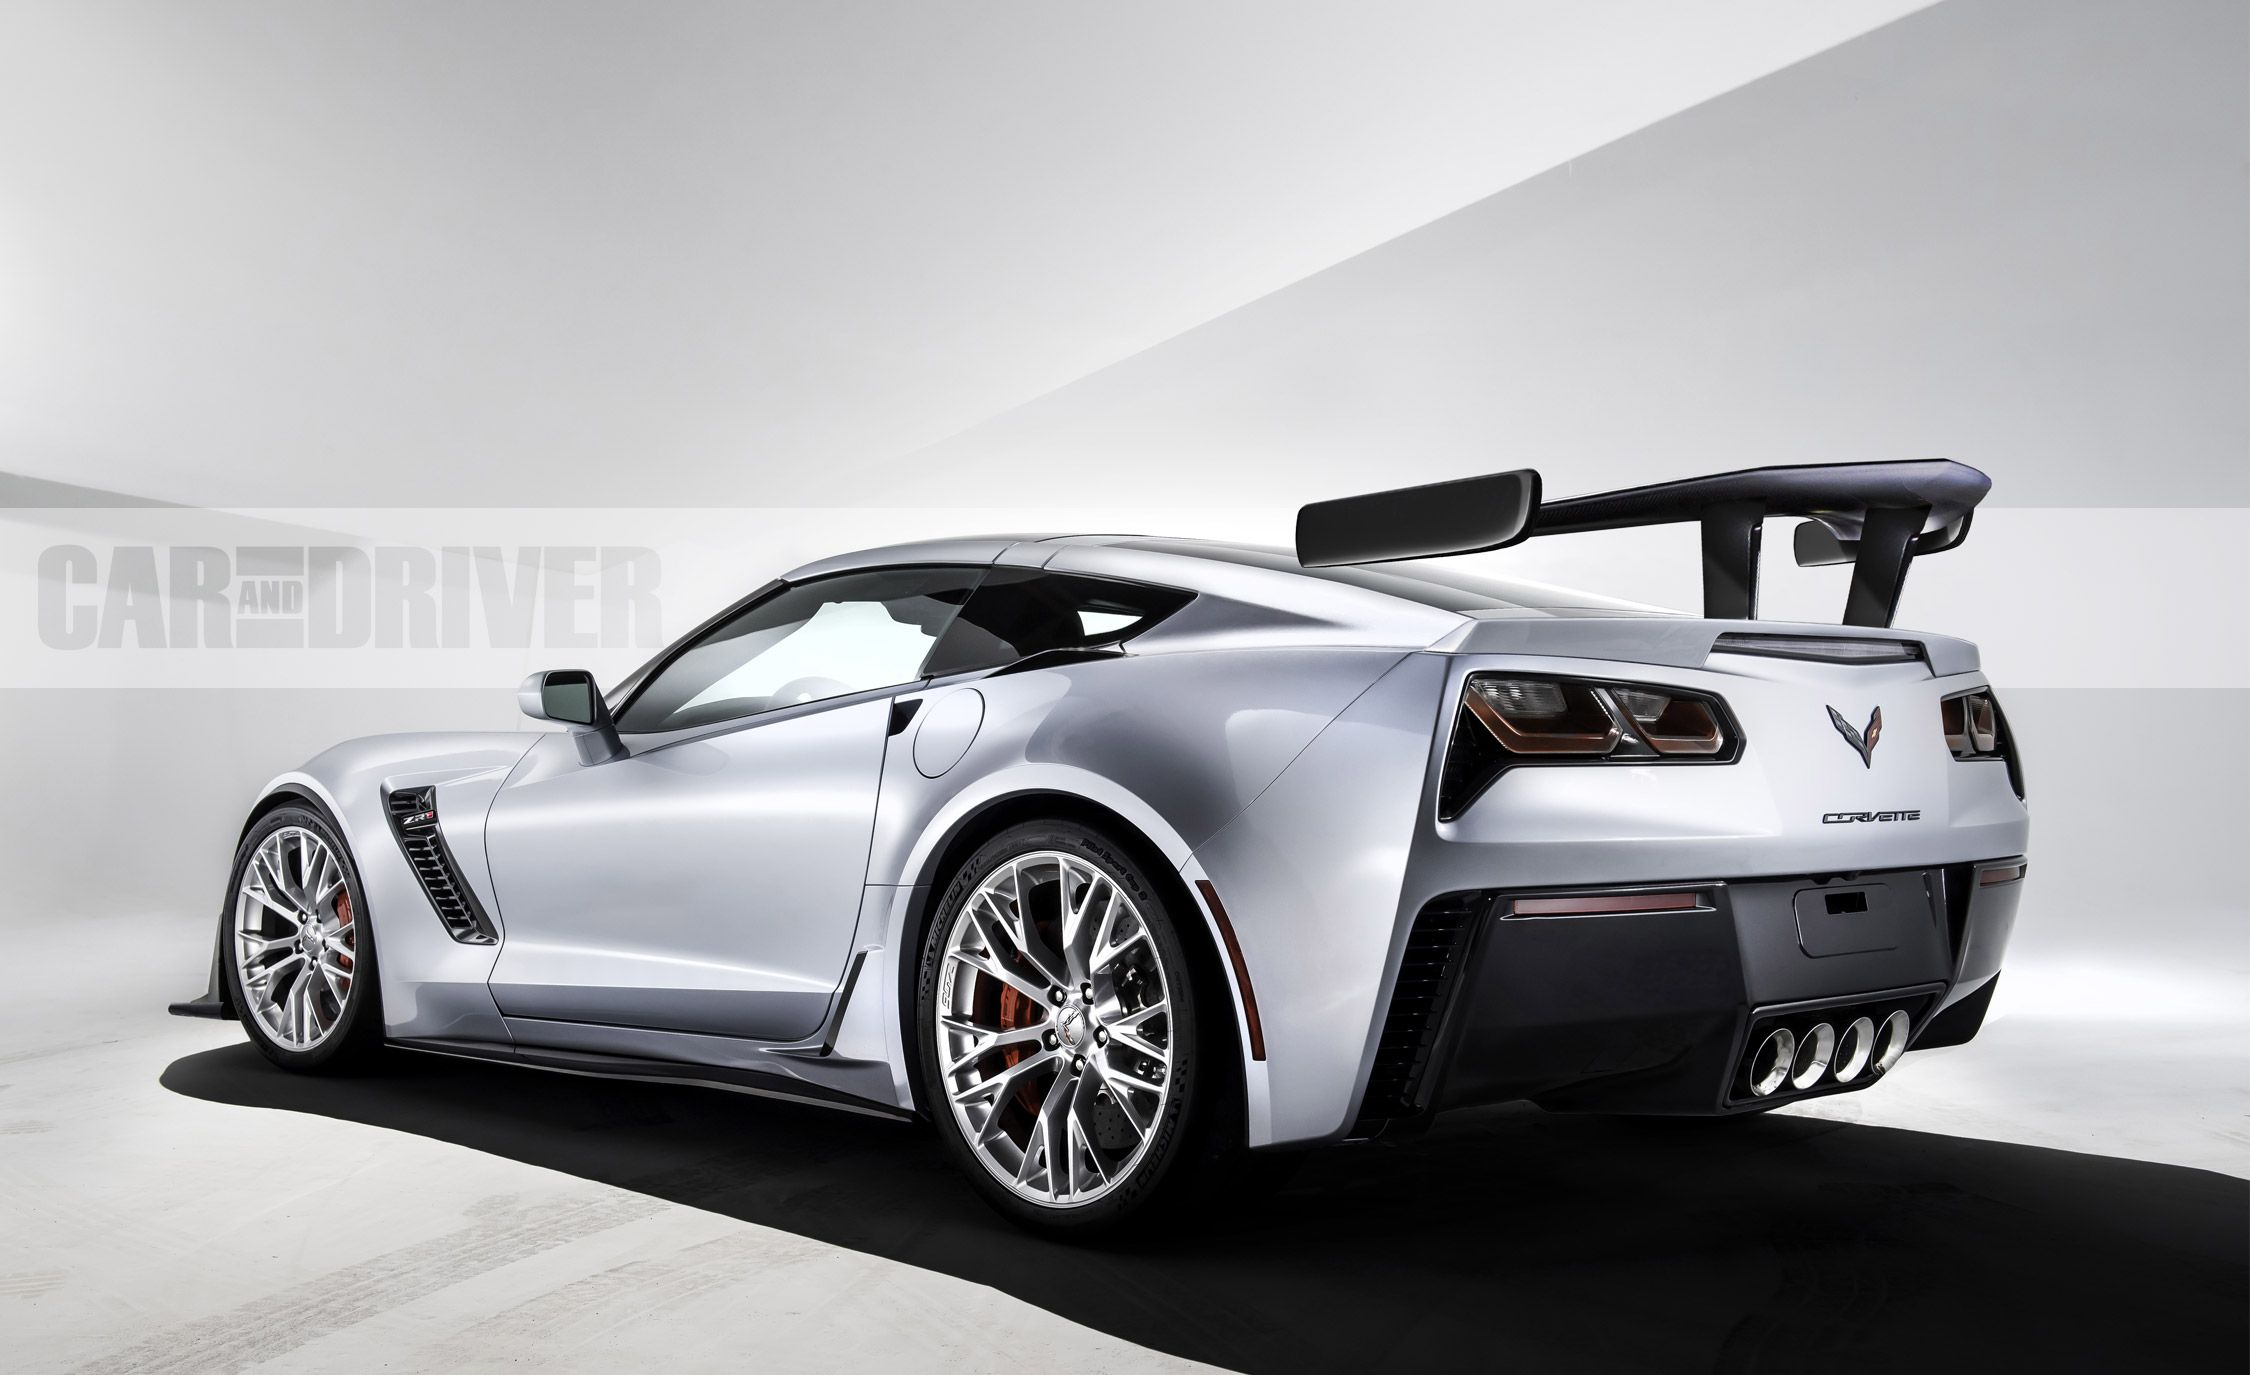 2018 Chevrolet Corvette ZR1: Sending Off C7 with One Hell of a Bang